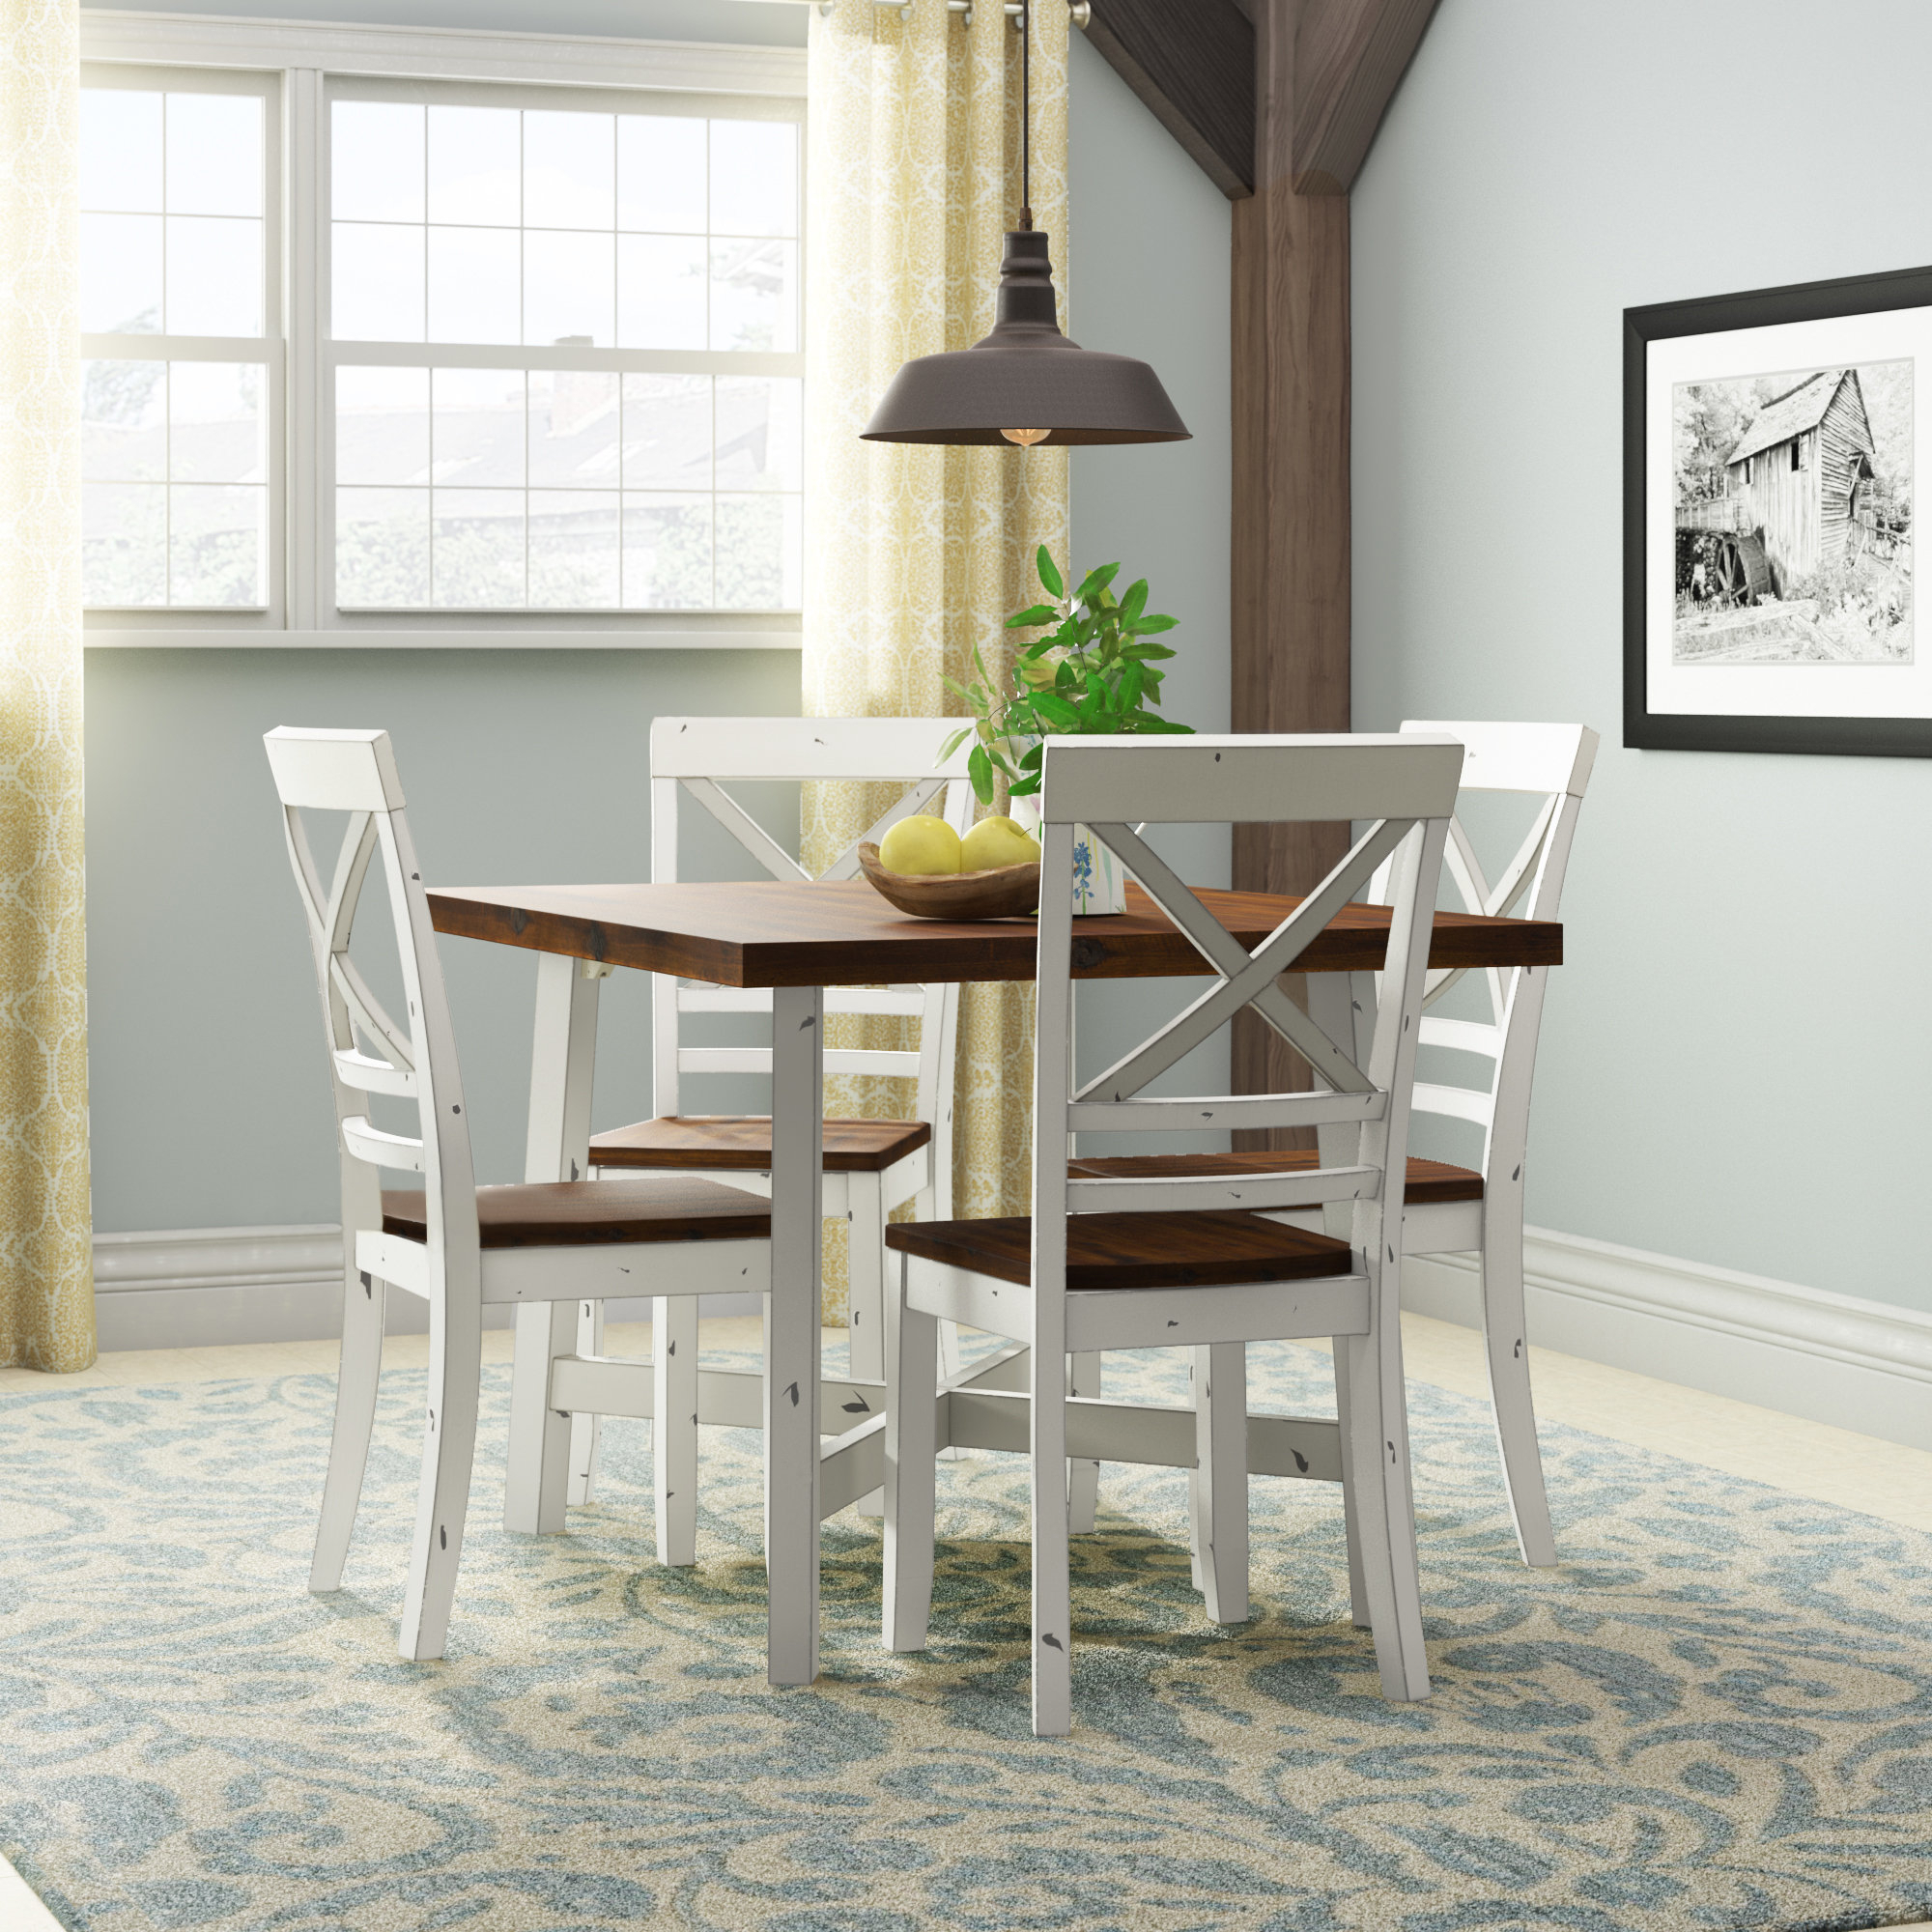 Dunnes 5 Piece Dining Set With Newest Liles 5 Piece Breakfast Nook Dining Sets (Image 7 of 20)